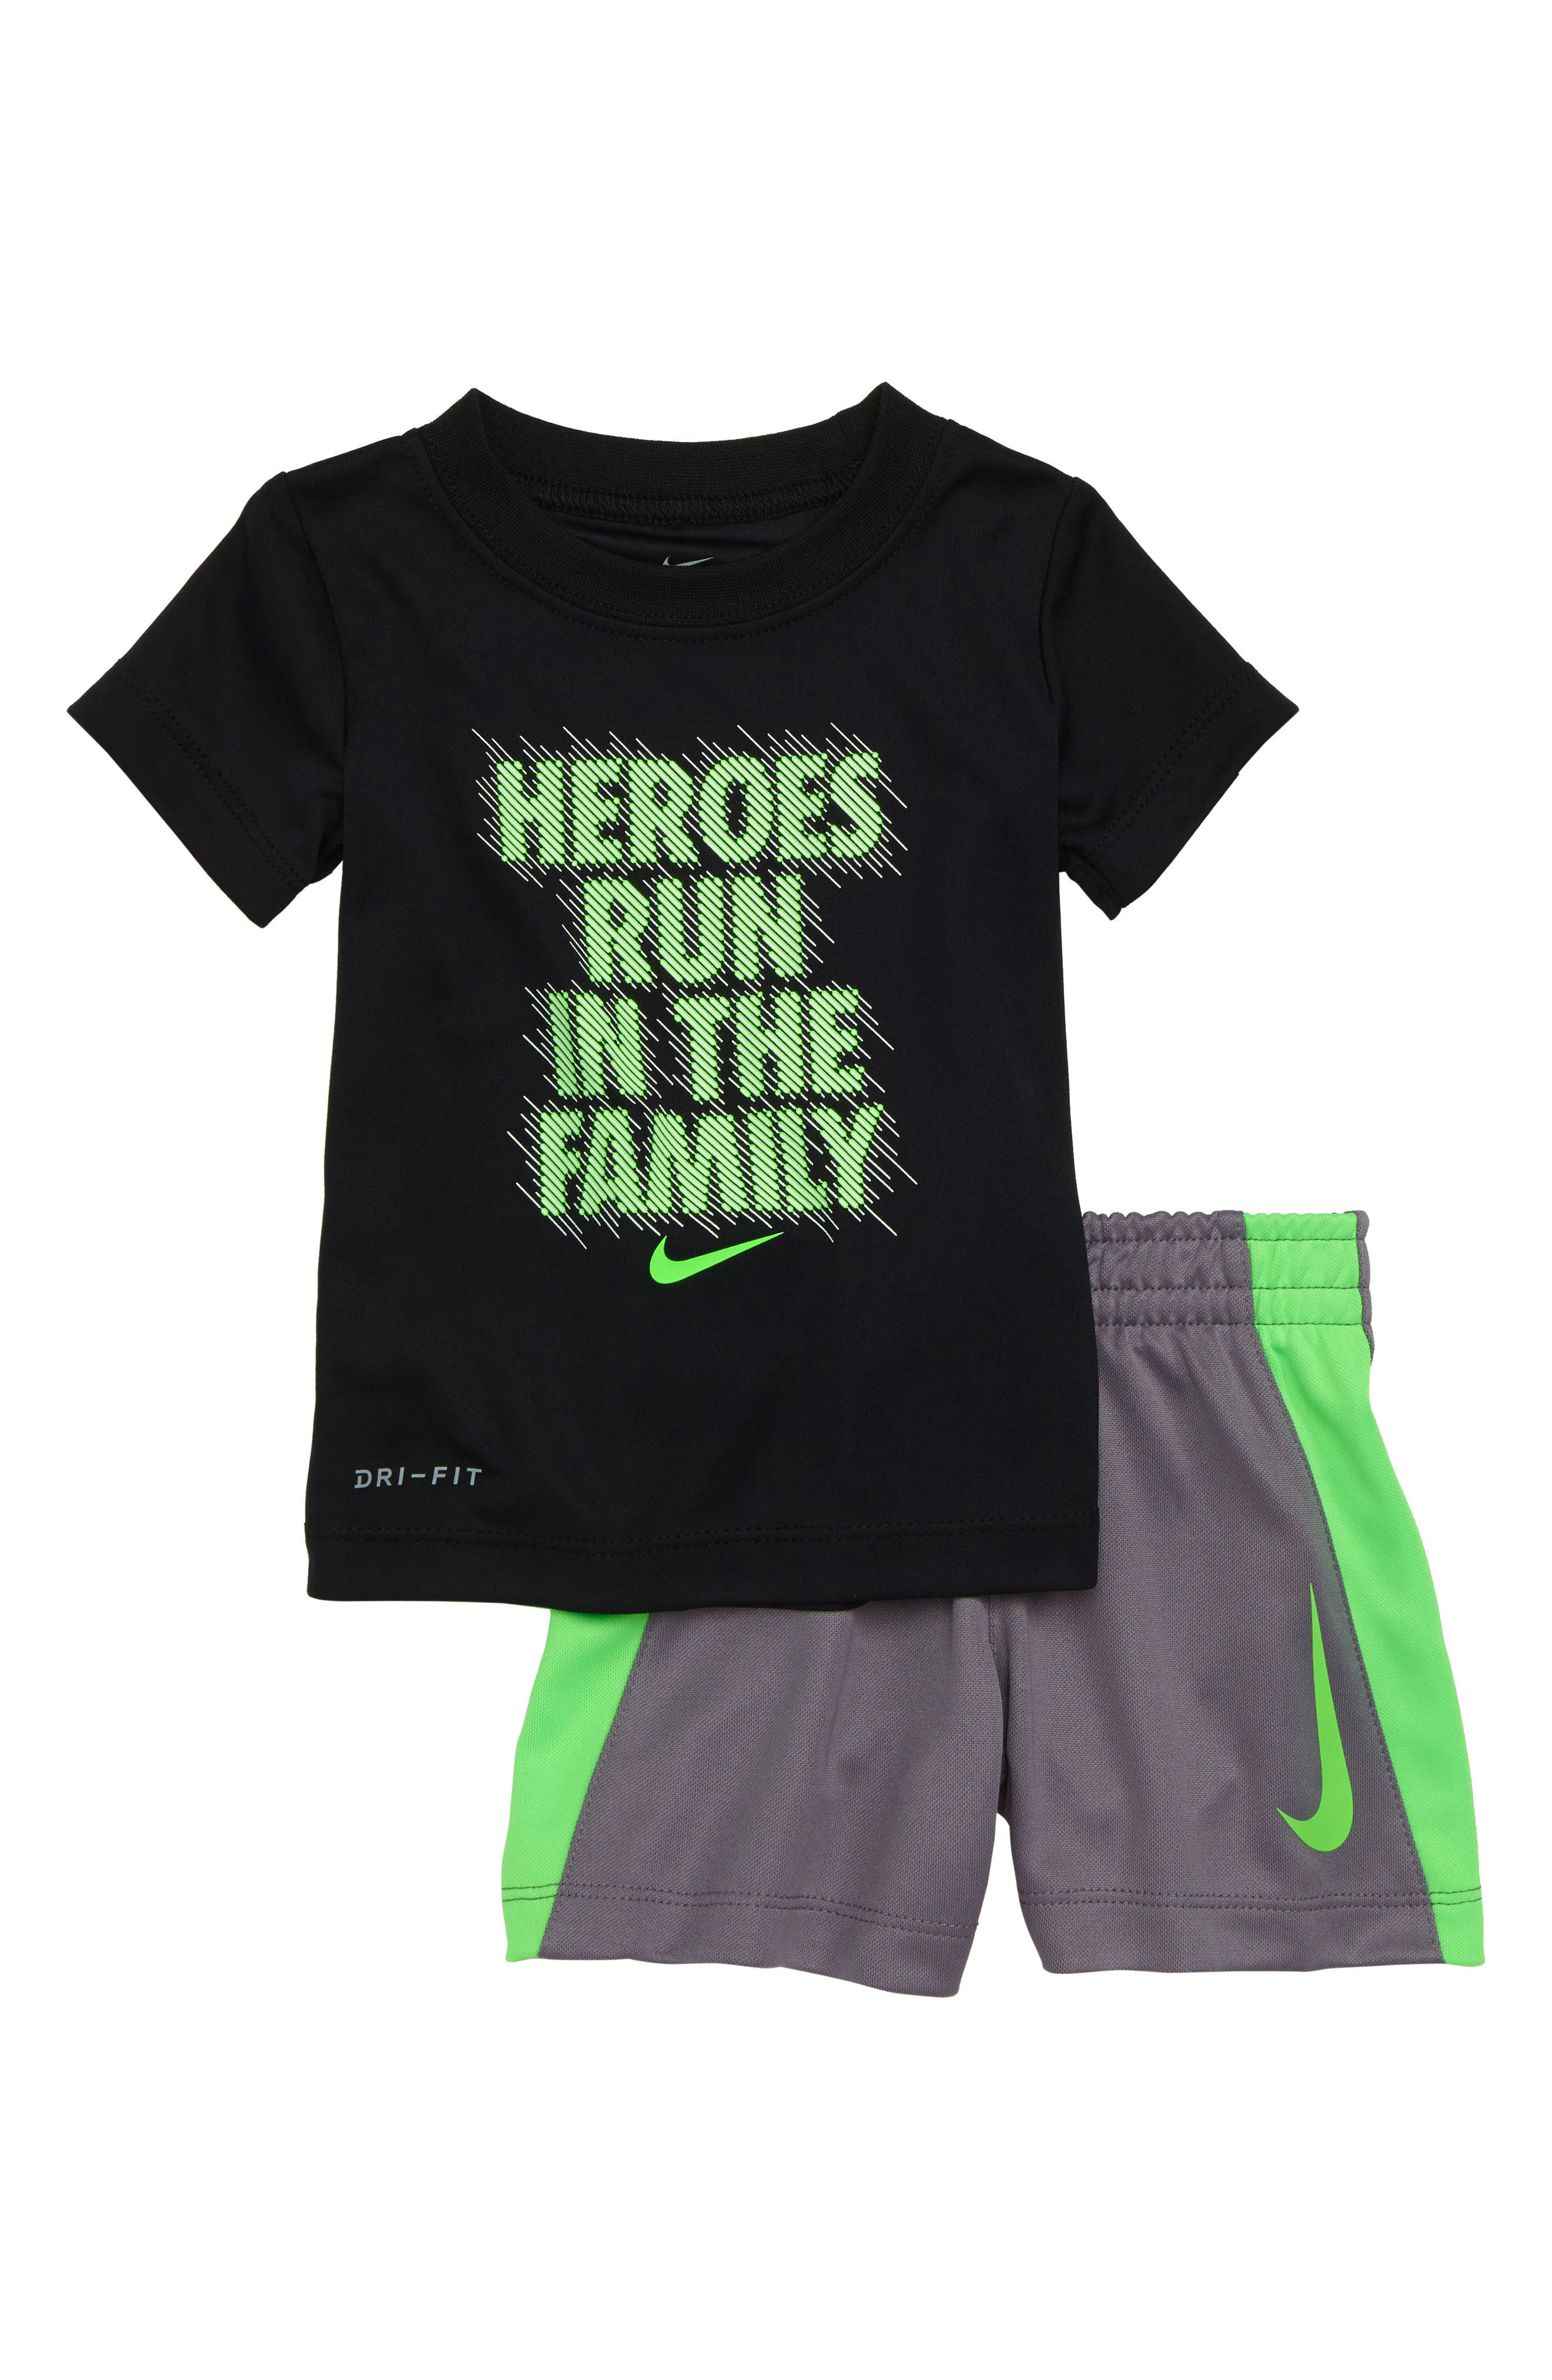 Dry Heroes Run in the Family Tee & Shorts Set,                             Main thumbnail 1, color,                             Black